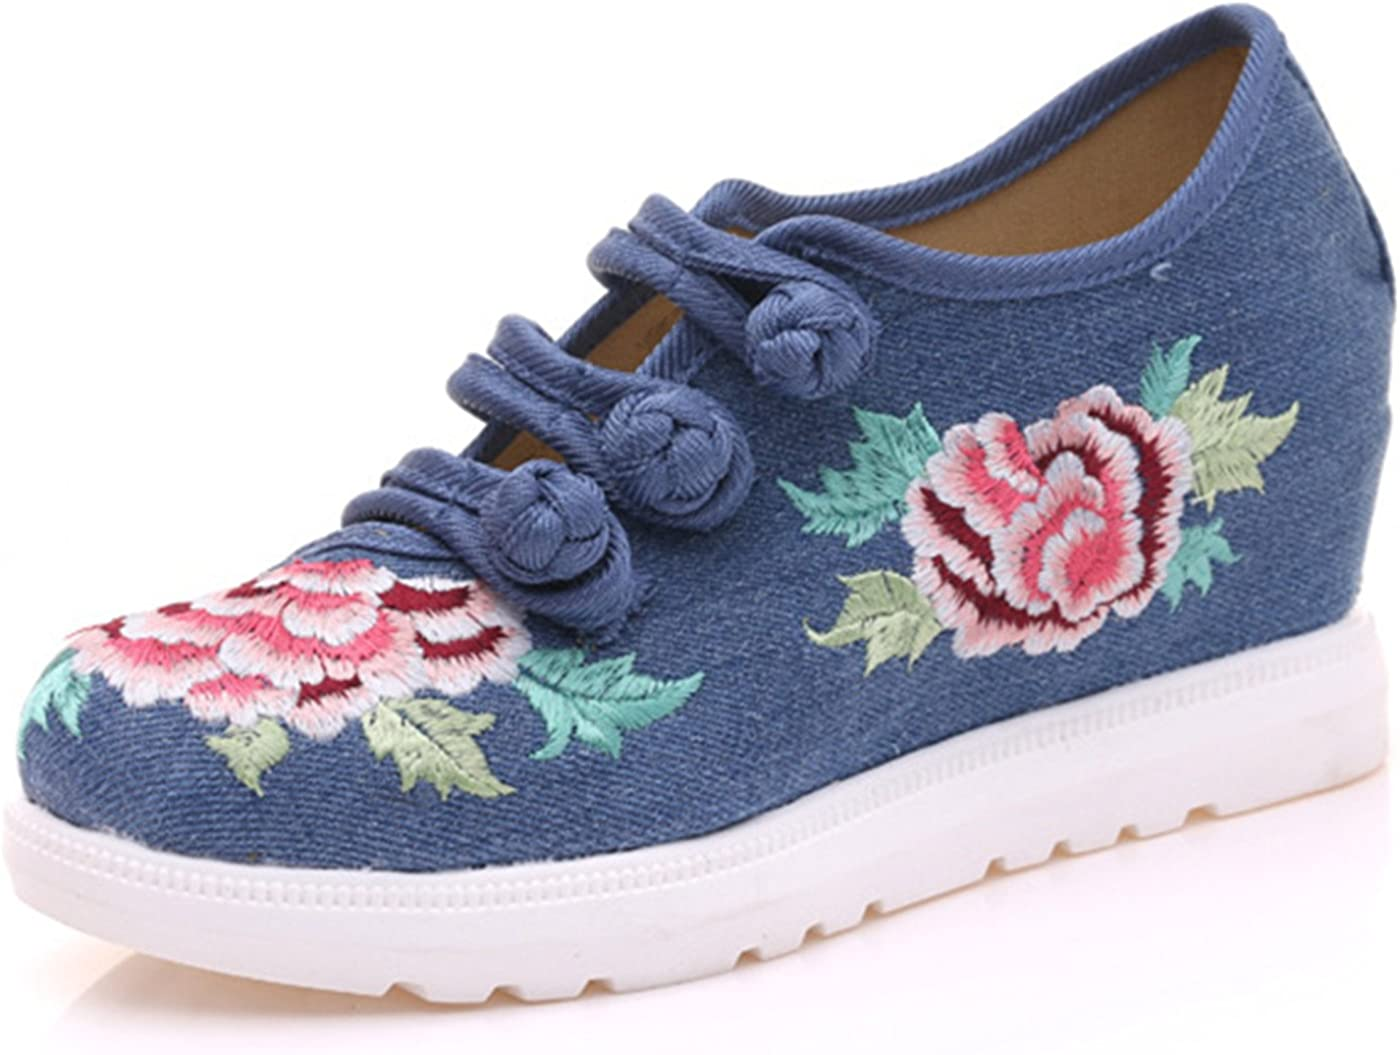 Qhome Womens Floral Peony Embroidery Comfortable Casual Walking Canvas Wedges Flat Elevator Shoes